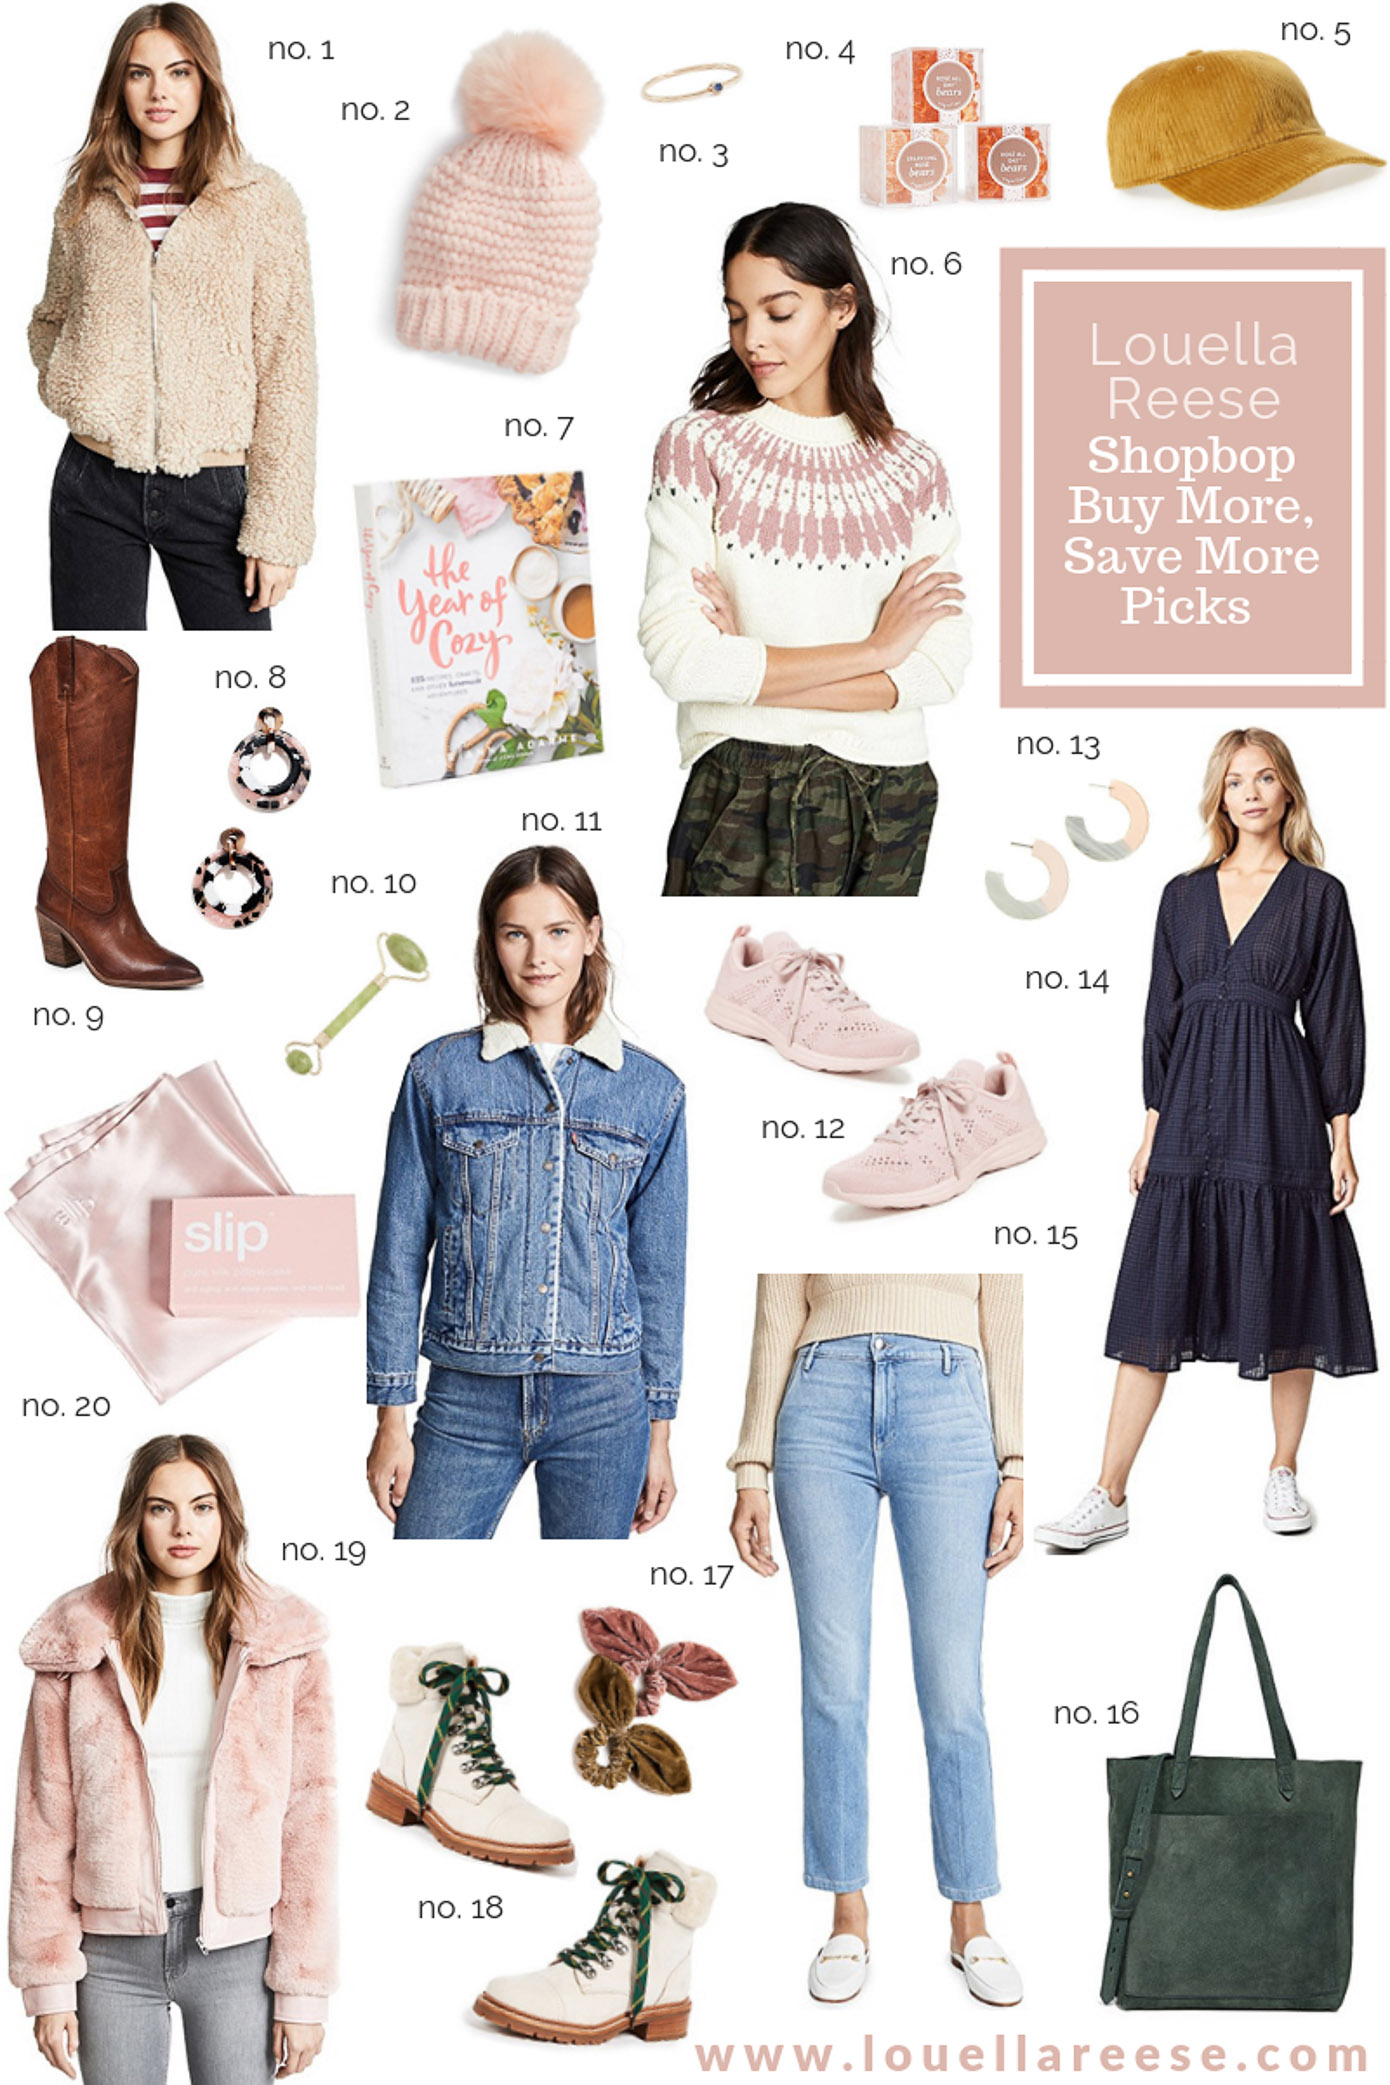 Shopbop Buy More Save More Winter 2018 Sale Top Picks featured on Louella Reese